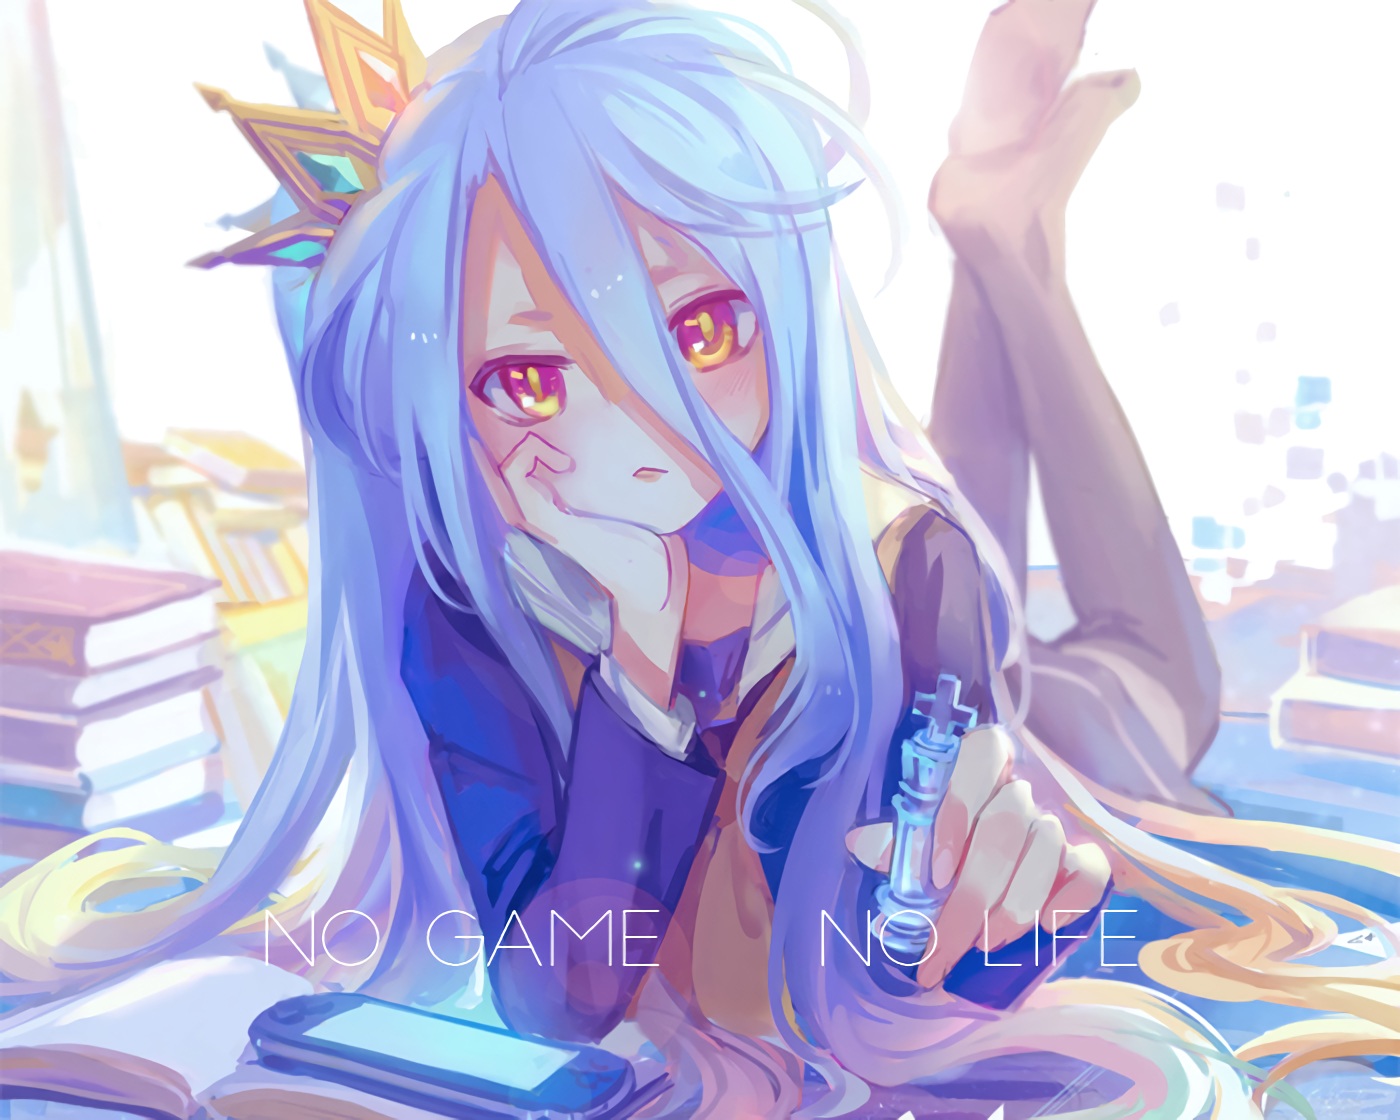 No game no life 1 no game no life anime wallpaper - Anime girl picture download ...